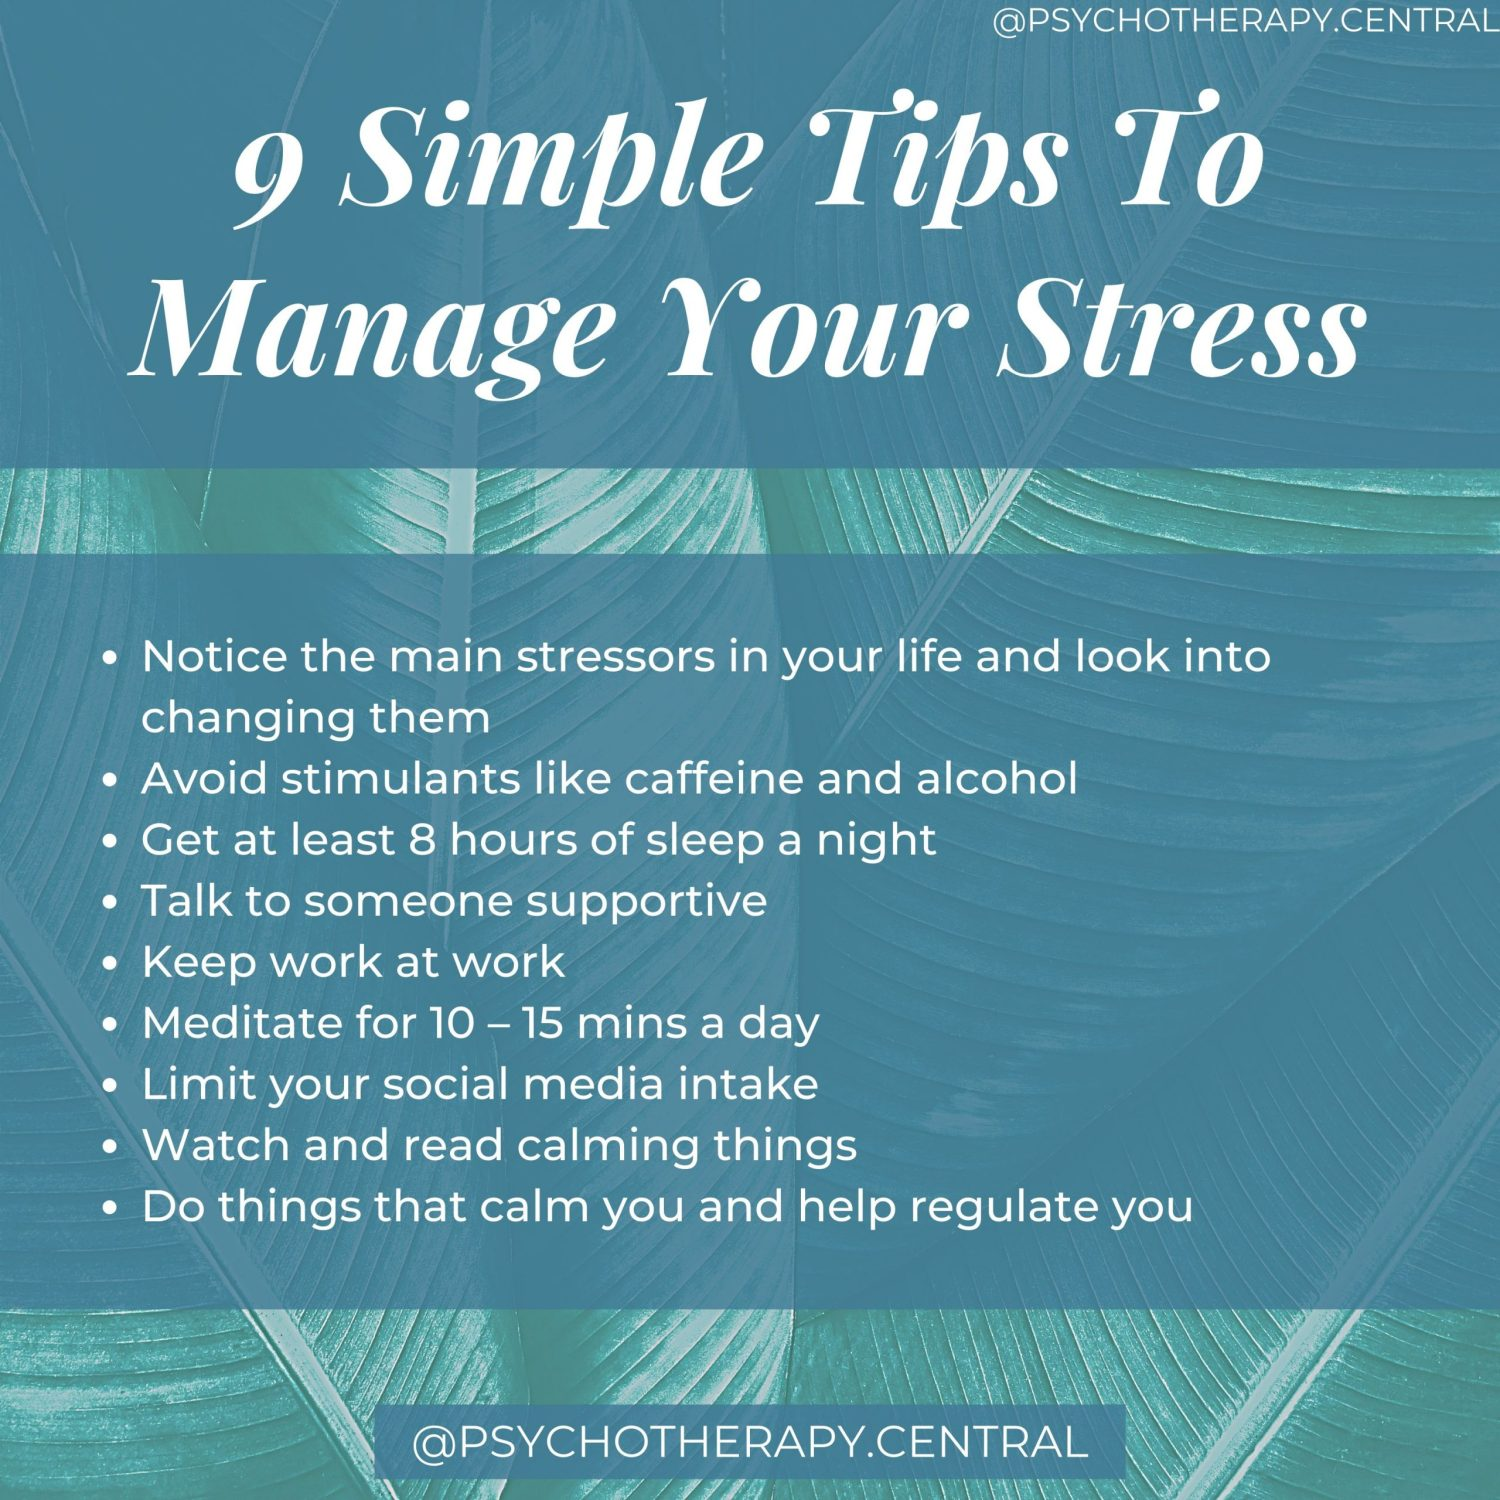 9 SIMPLE TIPS TO MANAGE YOUR STRESS